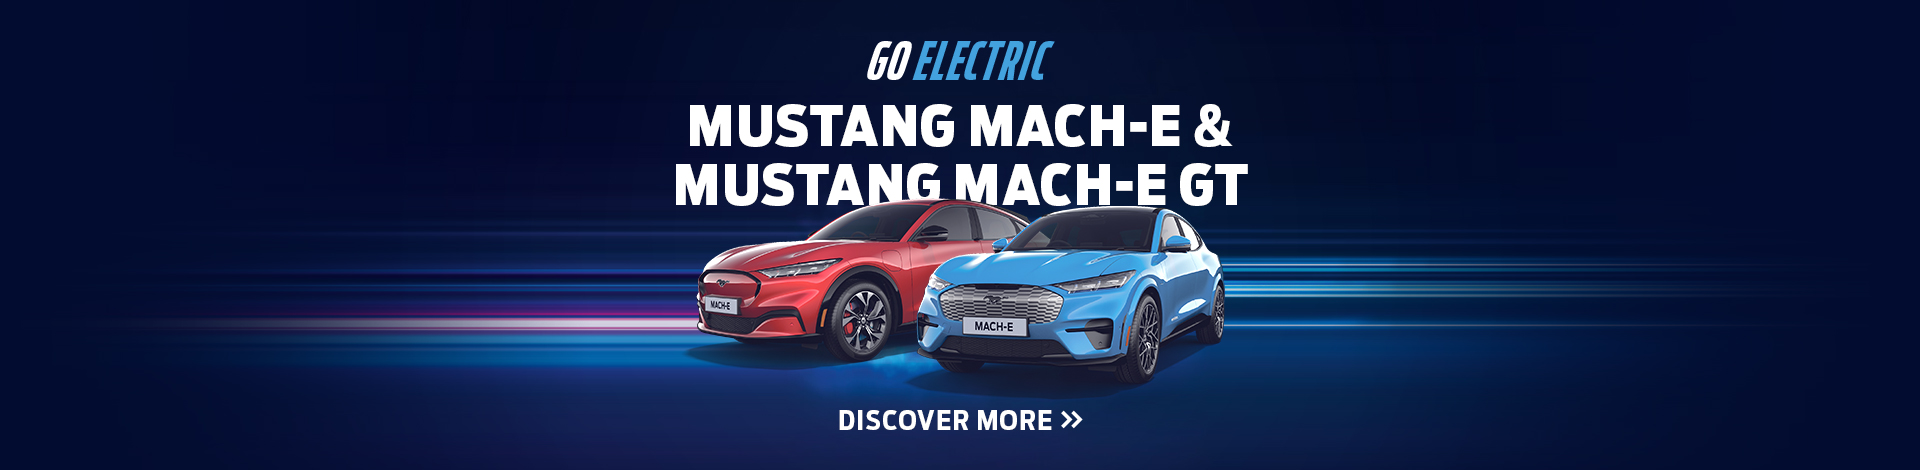 Go Electric - Mustang Mach-E & GT